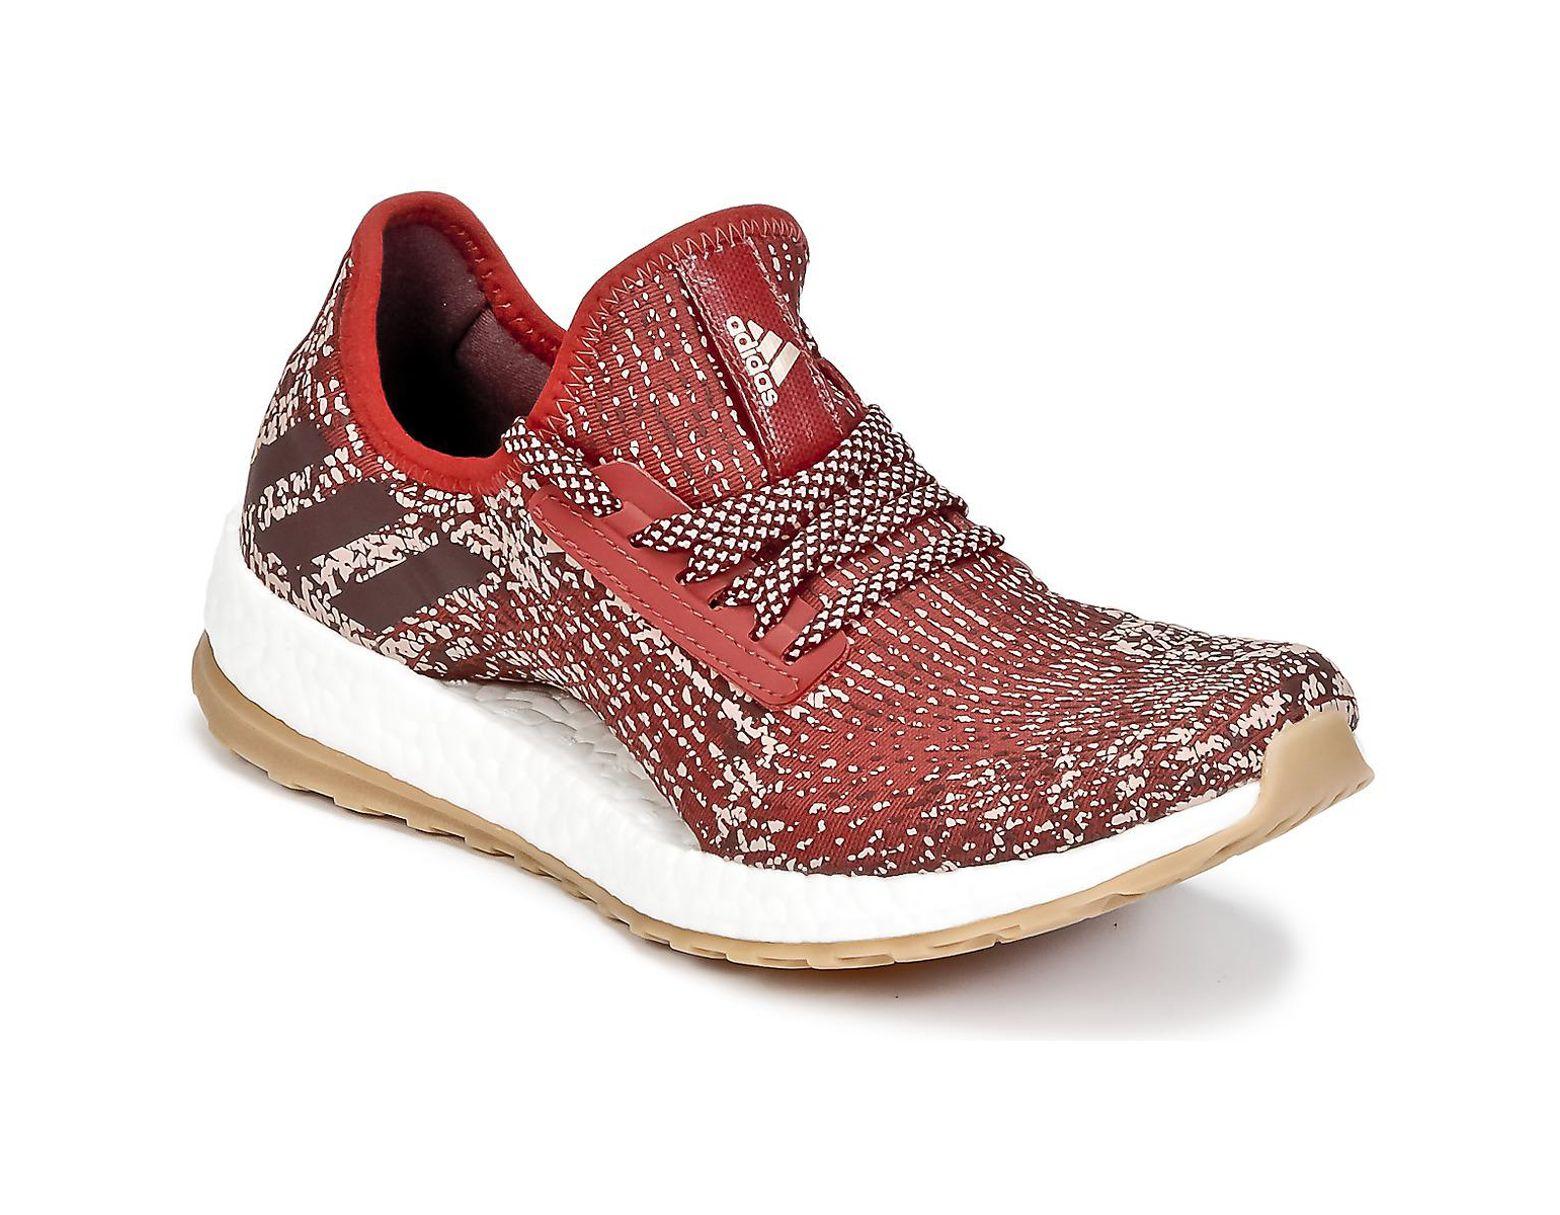 competitive price dae42 90745 adidas Pureboost X Atr Women s Running Trainers In Red in Red - Save 3% -  Lyst